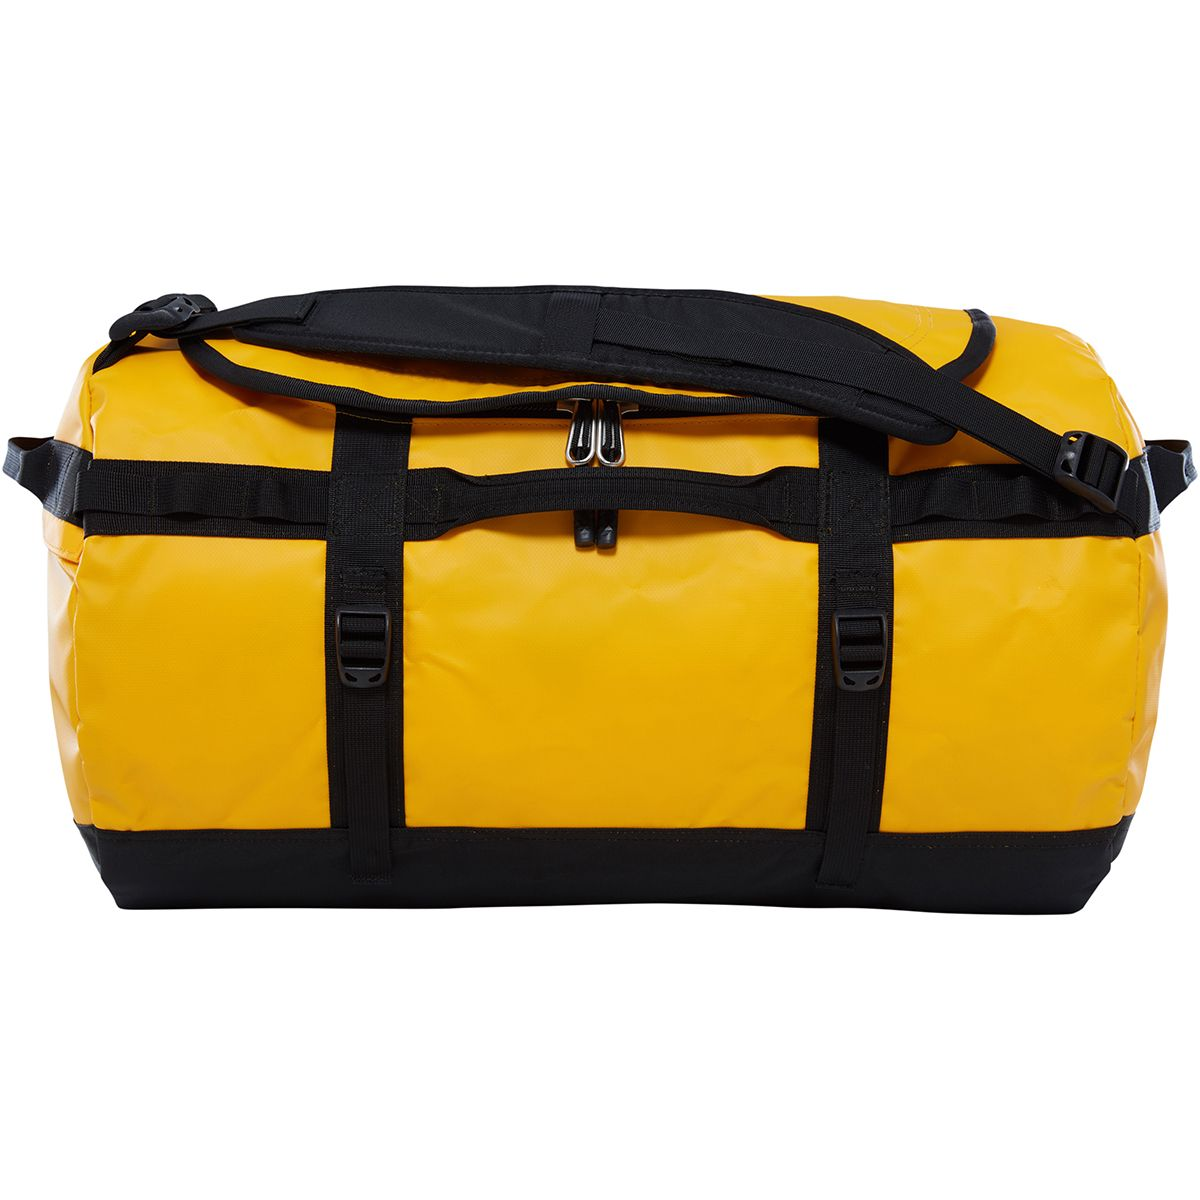 The North Face duffel bag